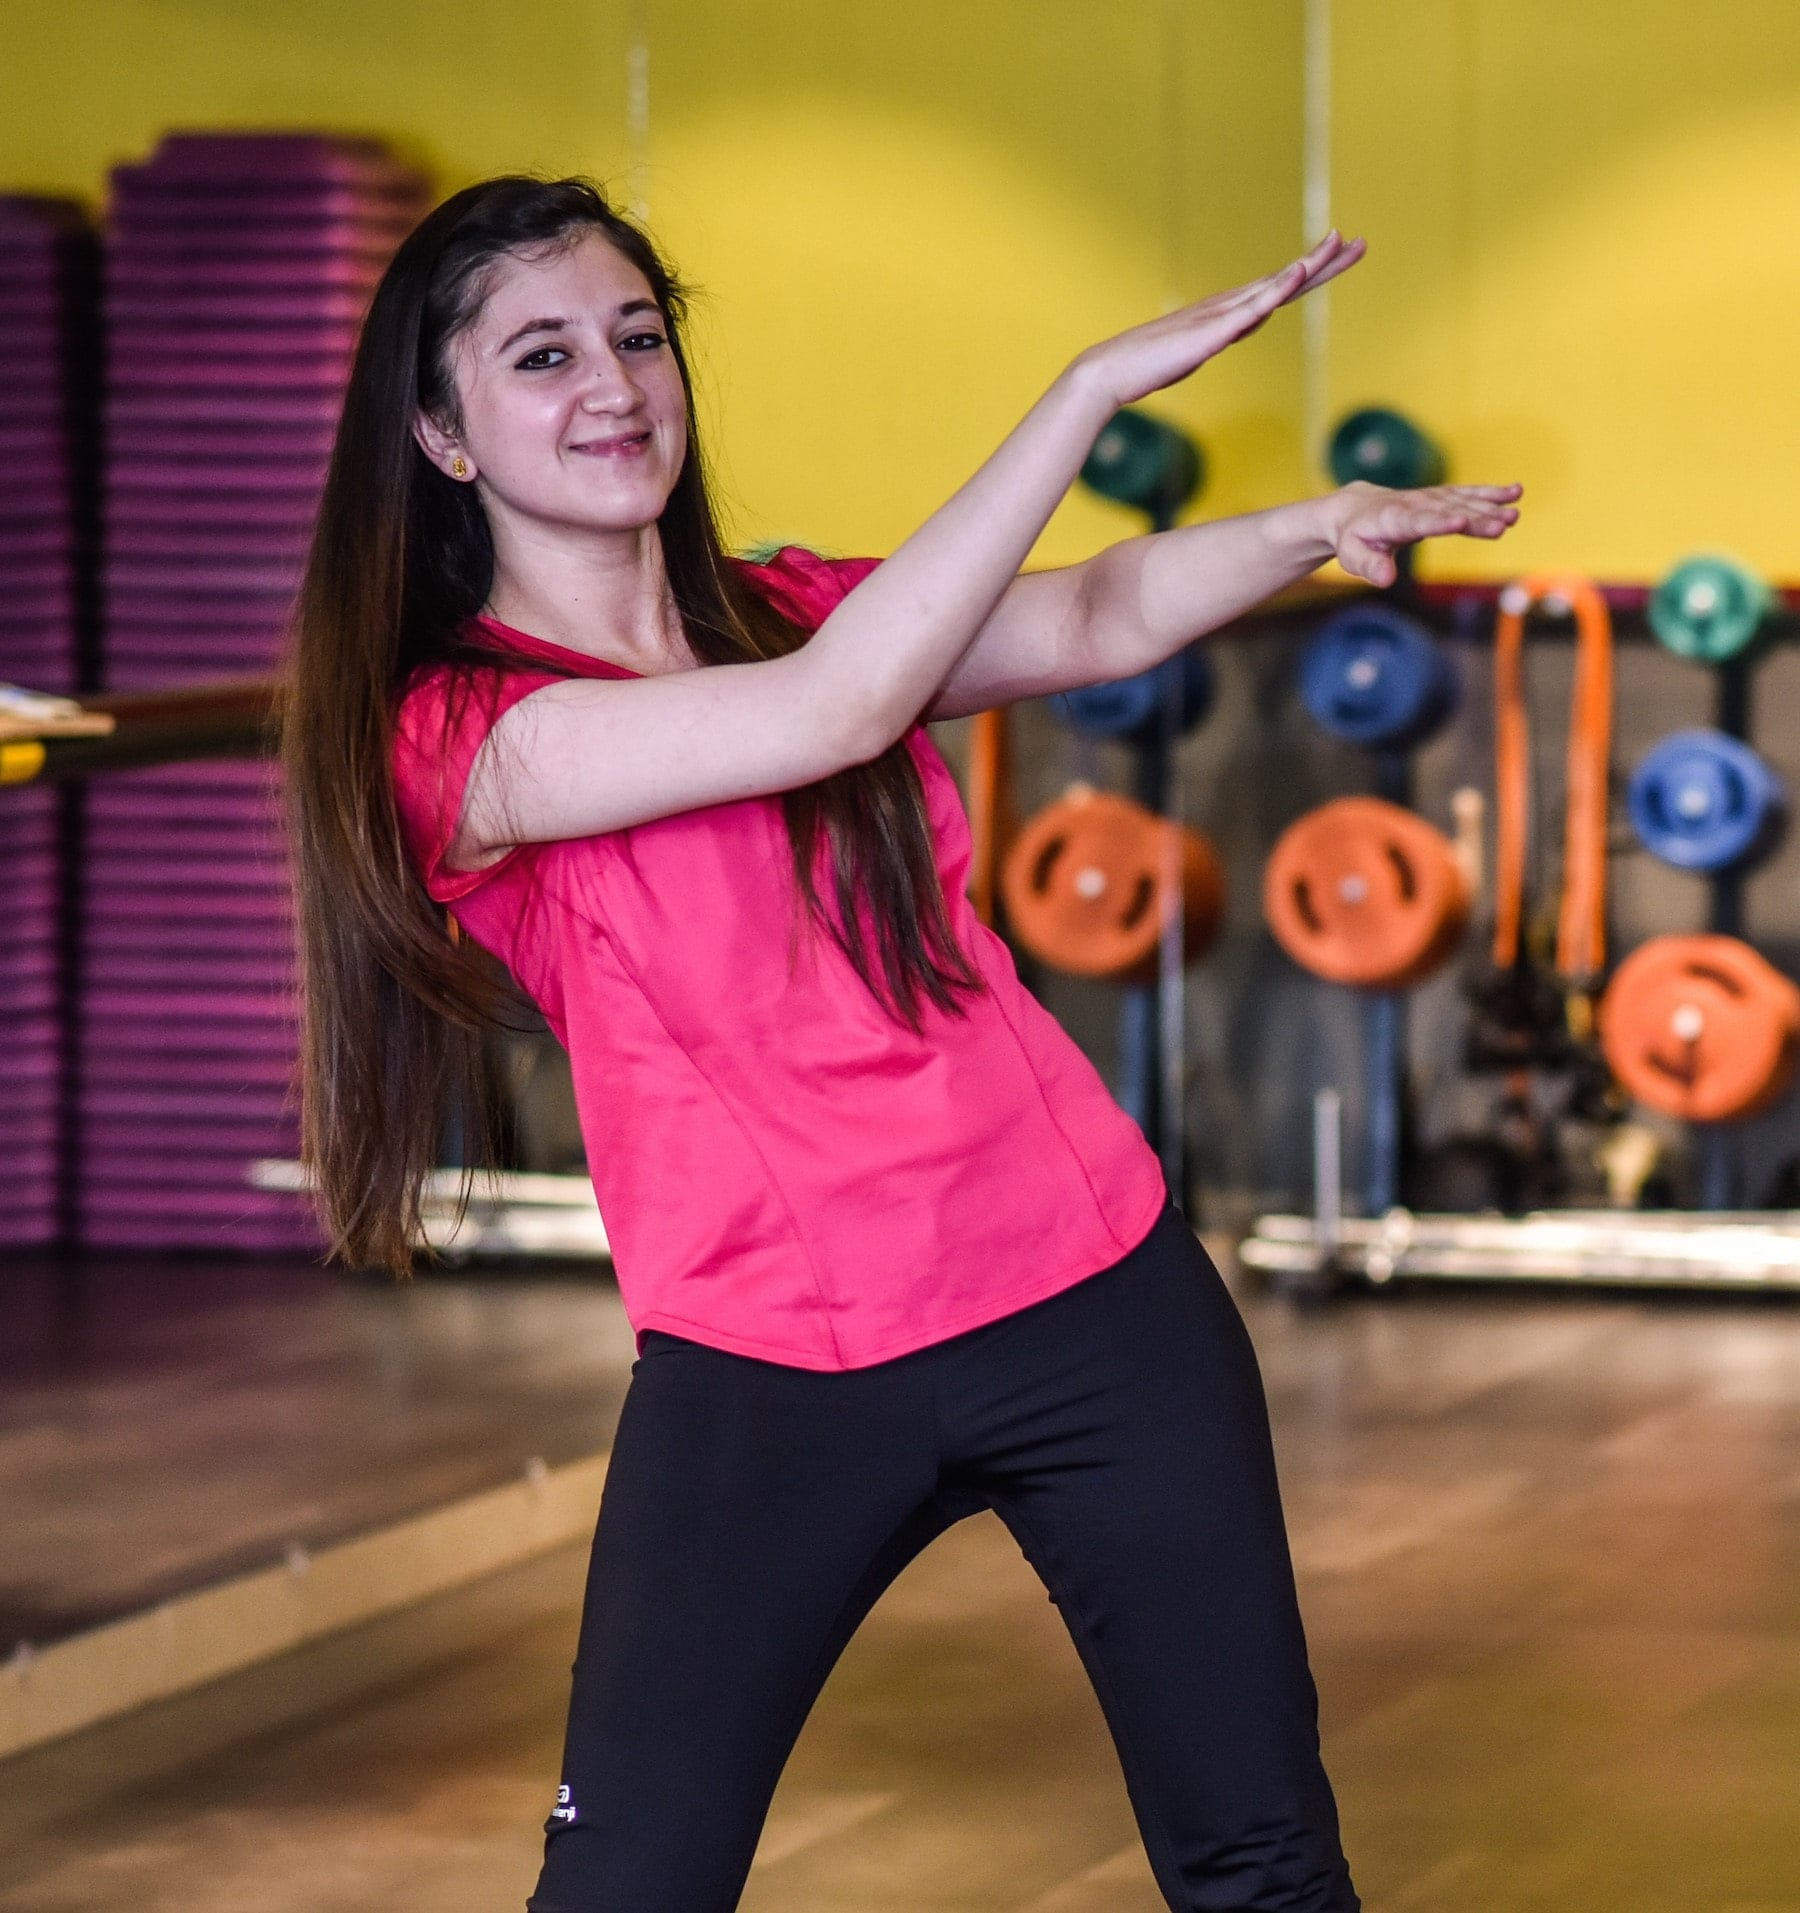 Sporty Outfits For Pakistani Girls-30 Cool Gym Looks For Girls